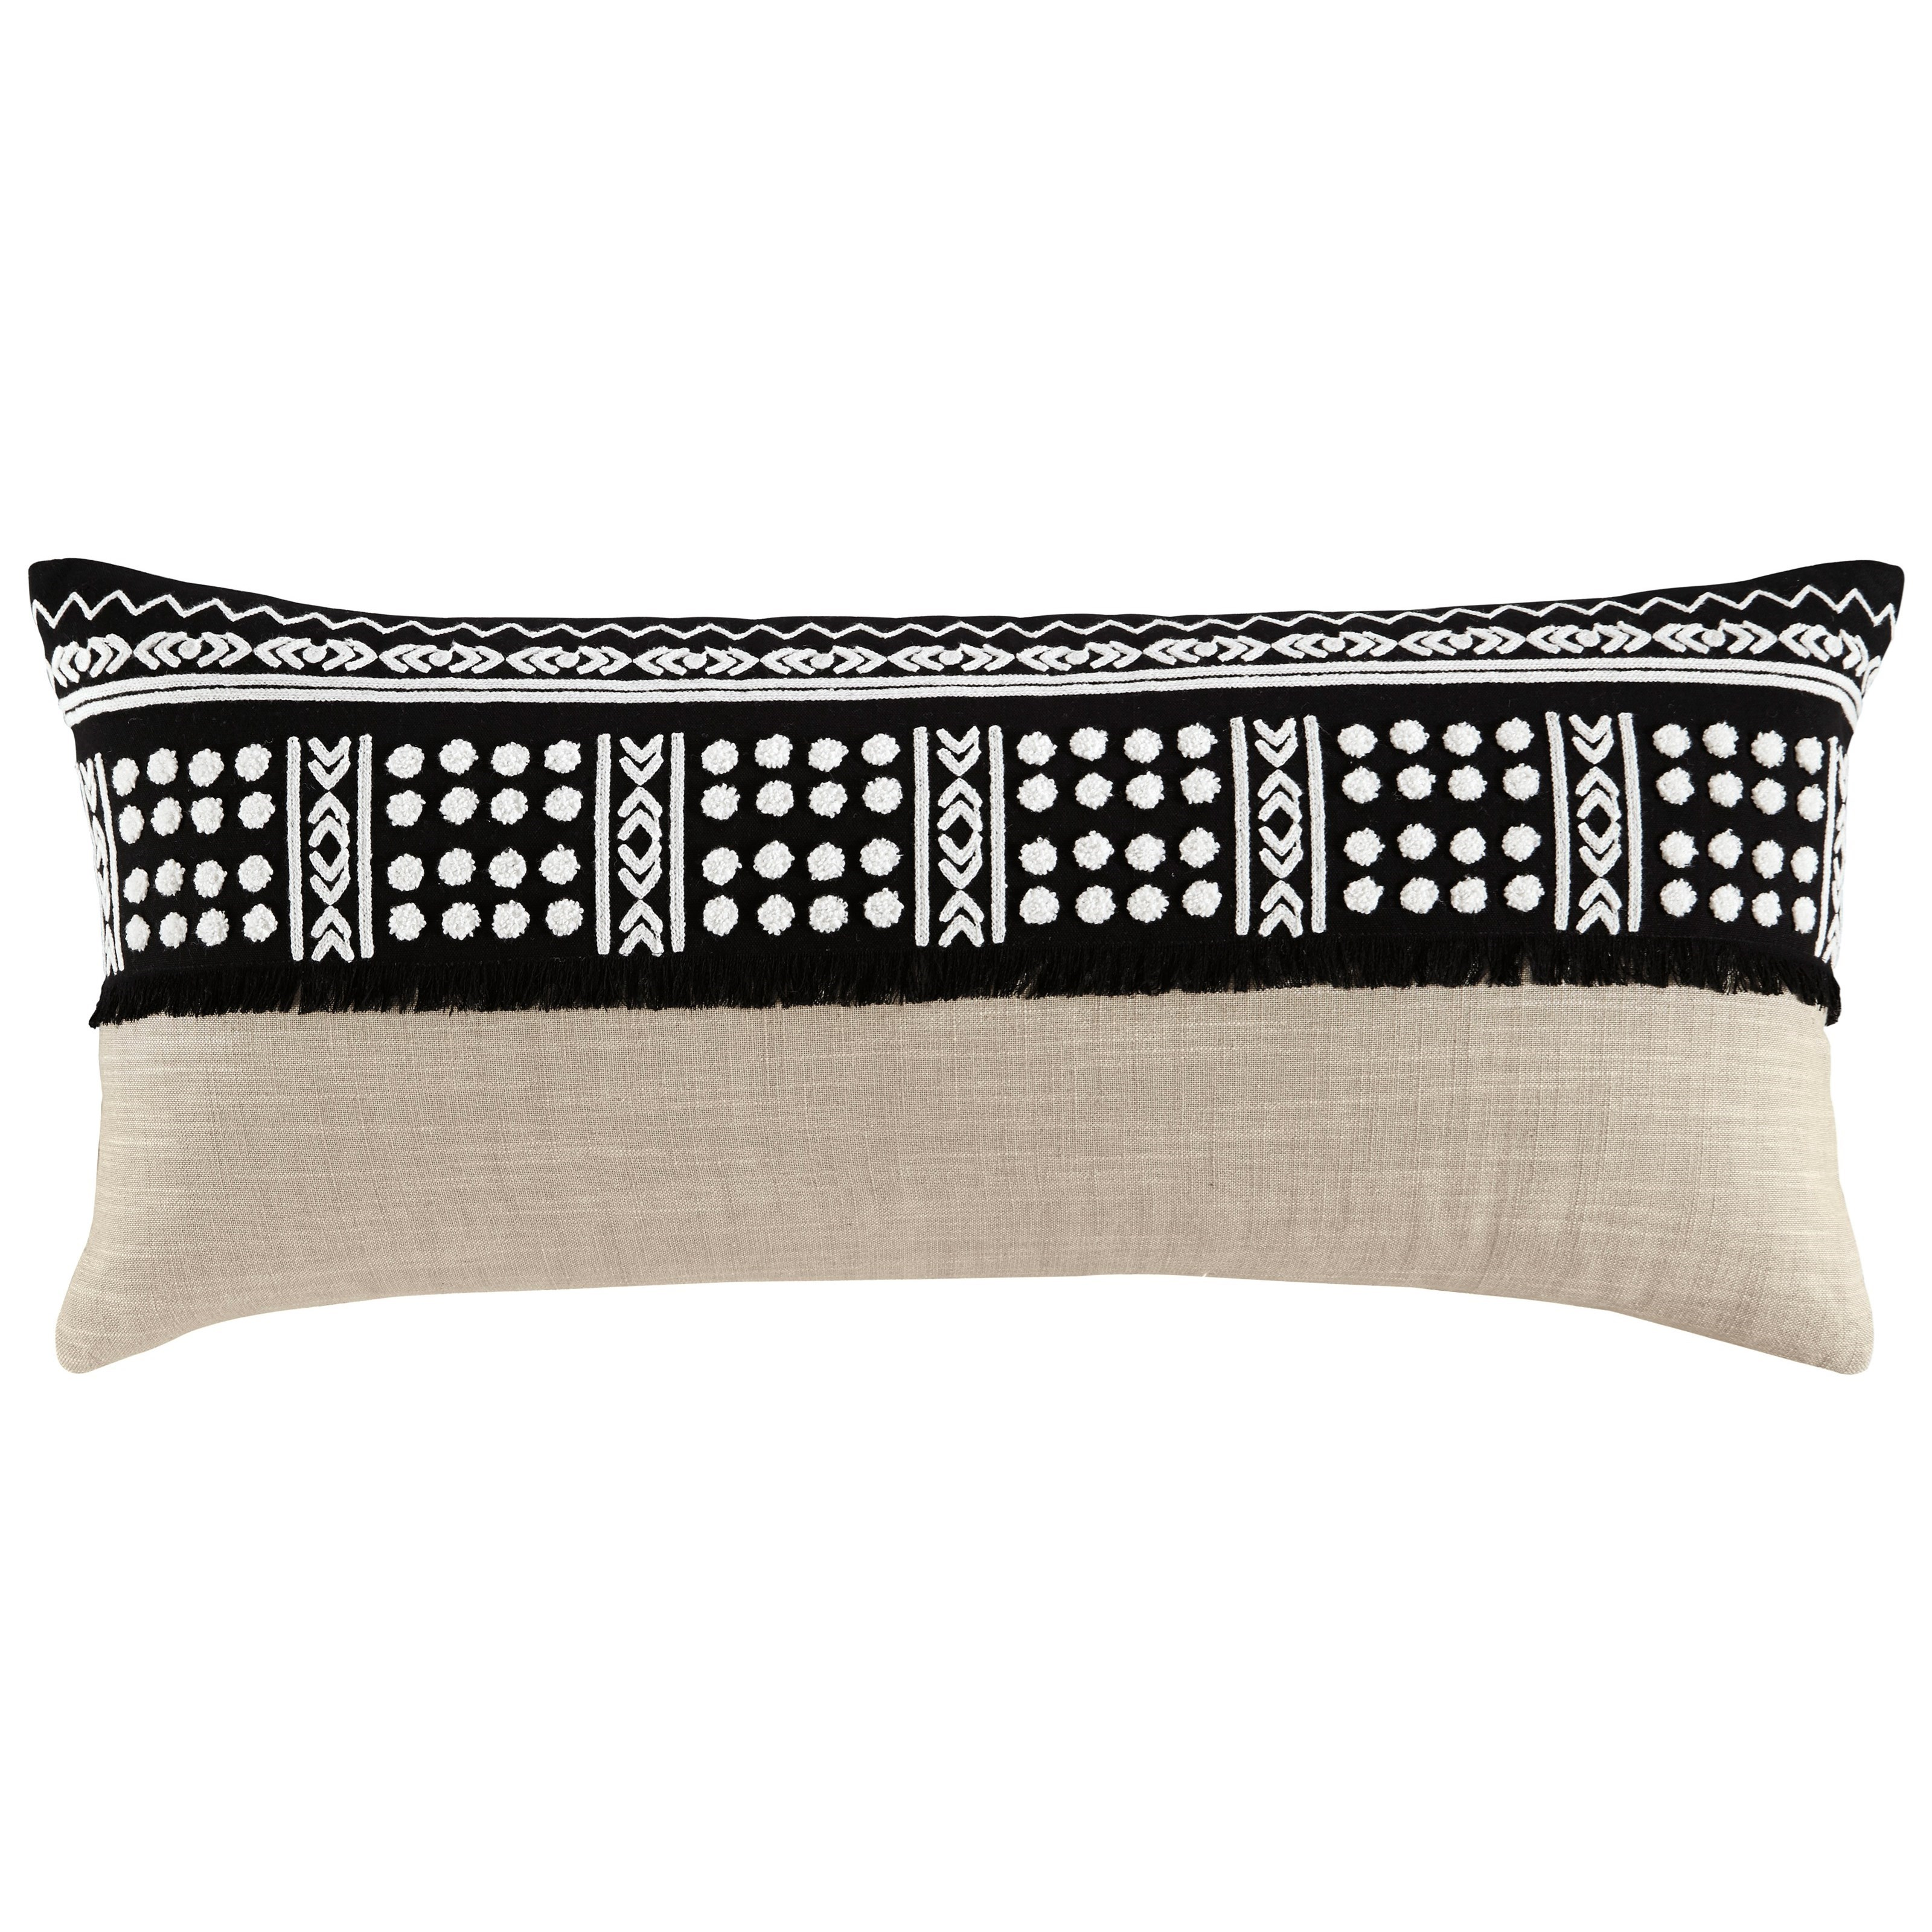 Pillows Mateja Black/Natural Pillow by Signature Design by Ashley at Northeast Factory Direct